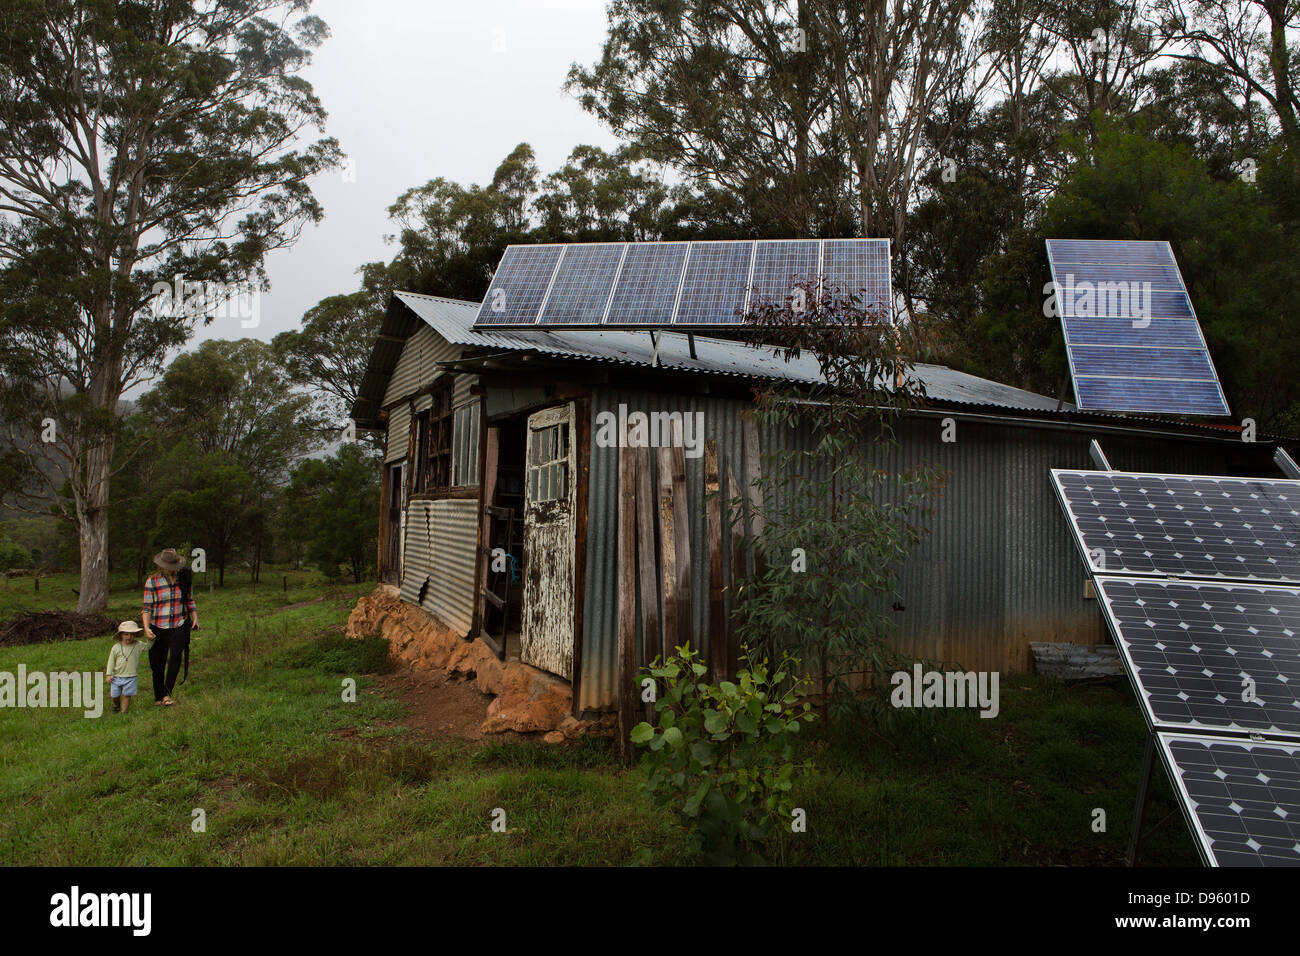 Stables with extensive solar panels, New South Wales, Australia - Stock Image